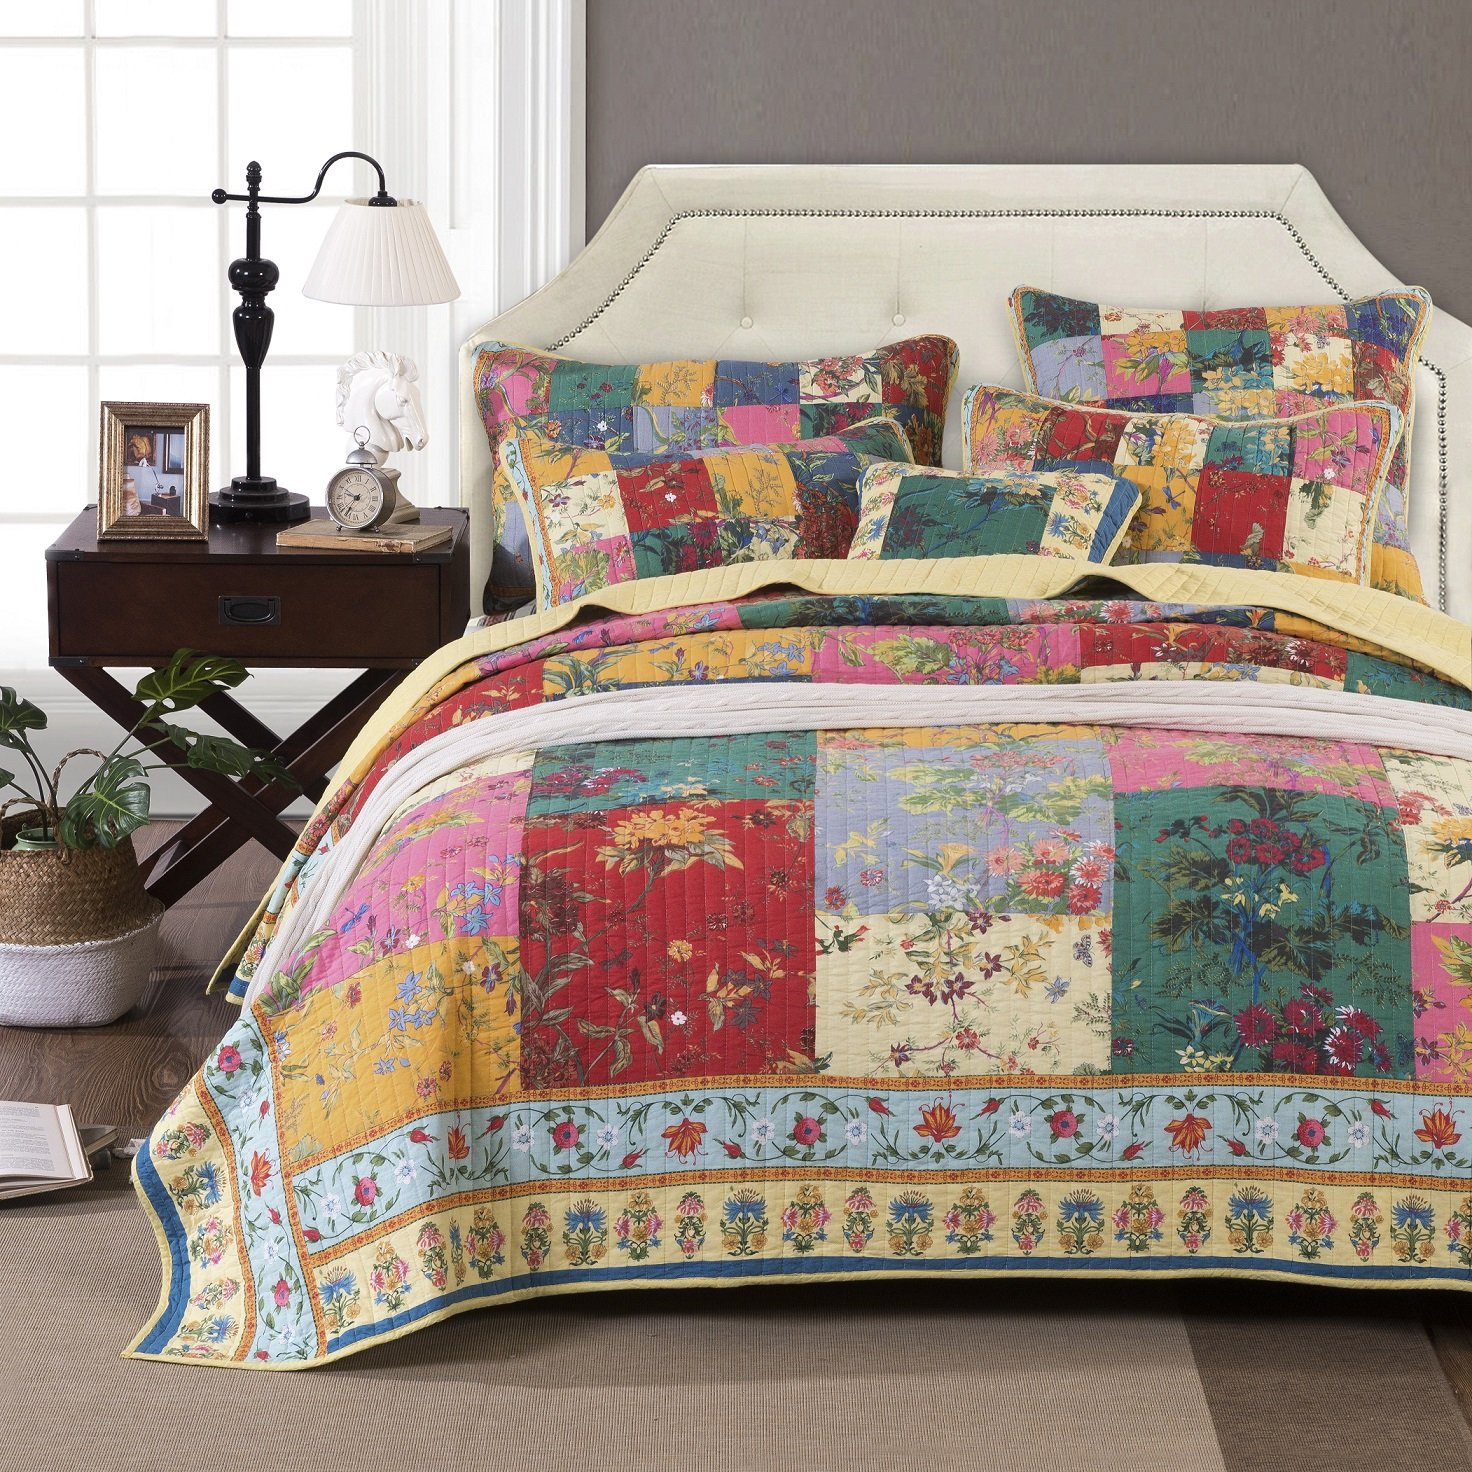 Tache Home Fashion Paradise Medley Patchwork Quilted Bedspread Set - Bright Vibrant Multi Colorful Yellow Floral Print - Full - 3-Pieces